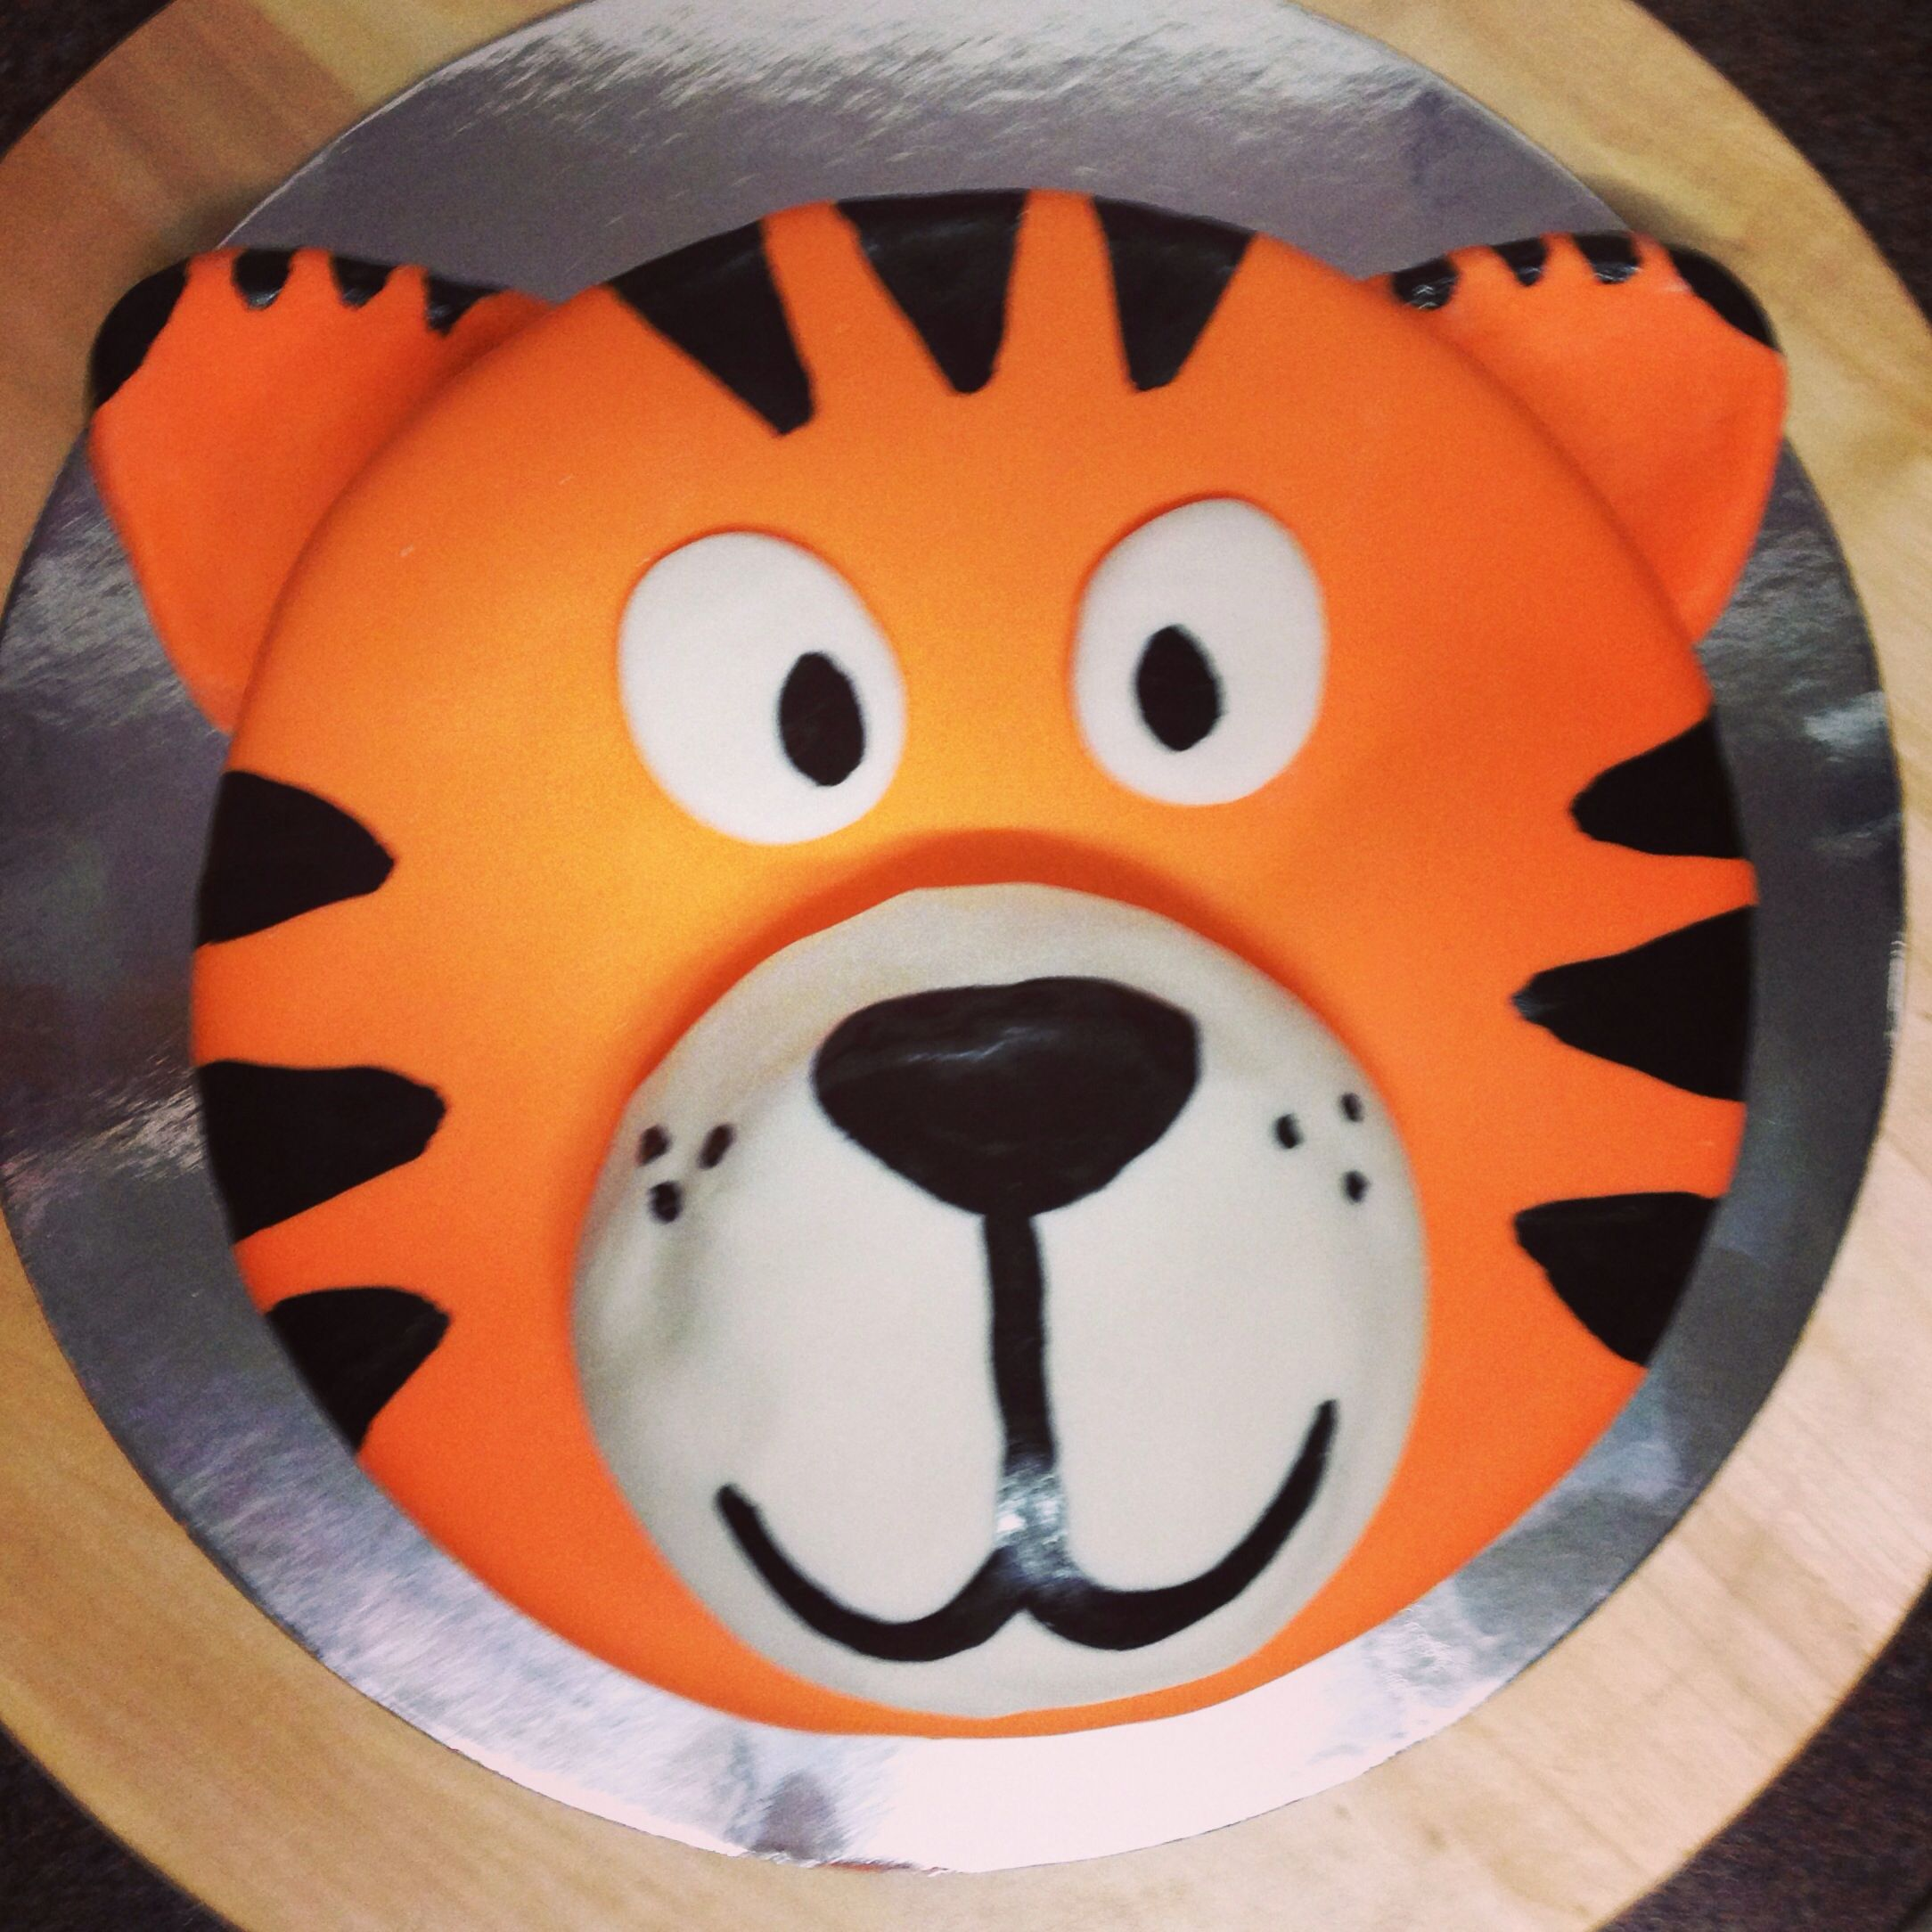 Pleasant Tiger Face Mudcake For A Birthday Cake With Images Tiger Personalised Birthday Cards Paralily Jamesorg